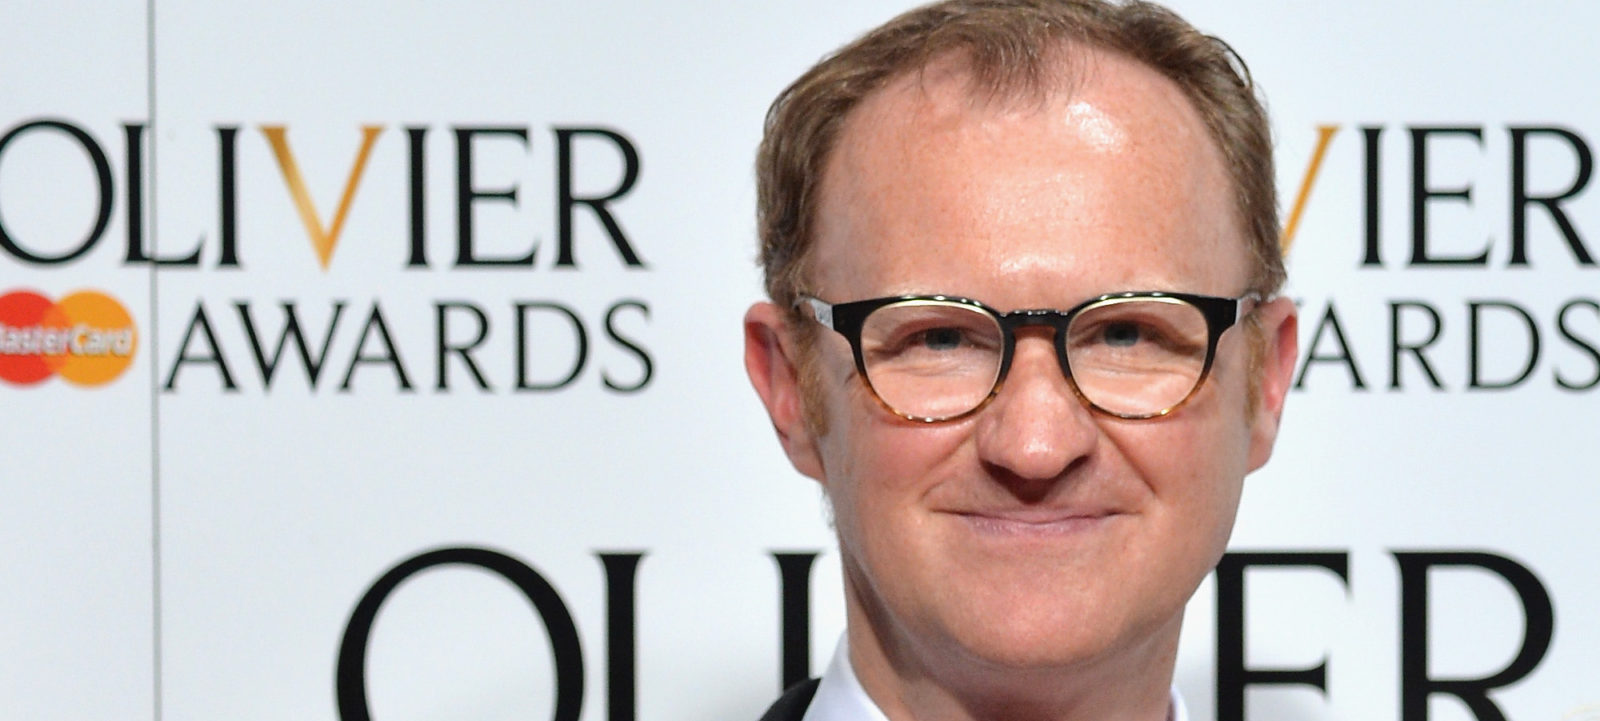 Mark Gatiss winner of the award for Best Actor in a Supporting Role for 'Three Days In The Country' and Judi Dench winner of the award for Best Actress in a Supporting Role for ' The Winter's Tale' pose in the winners room at The Olivier Awards at The Royal Opera House on April 3, 2016 in London, England.